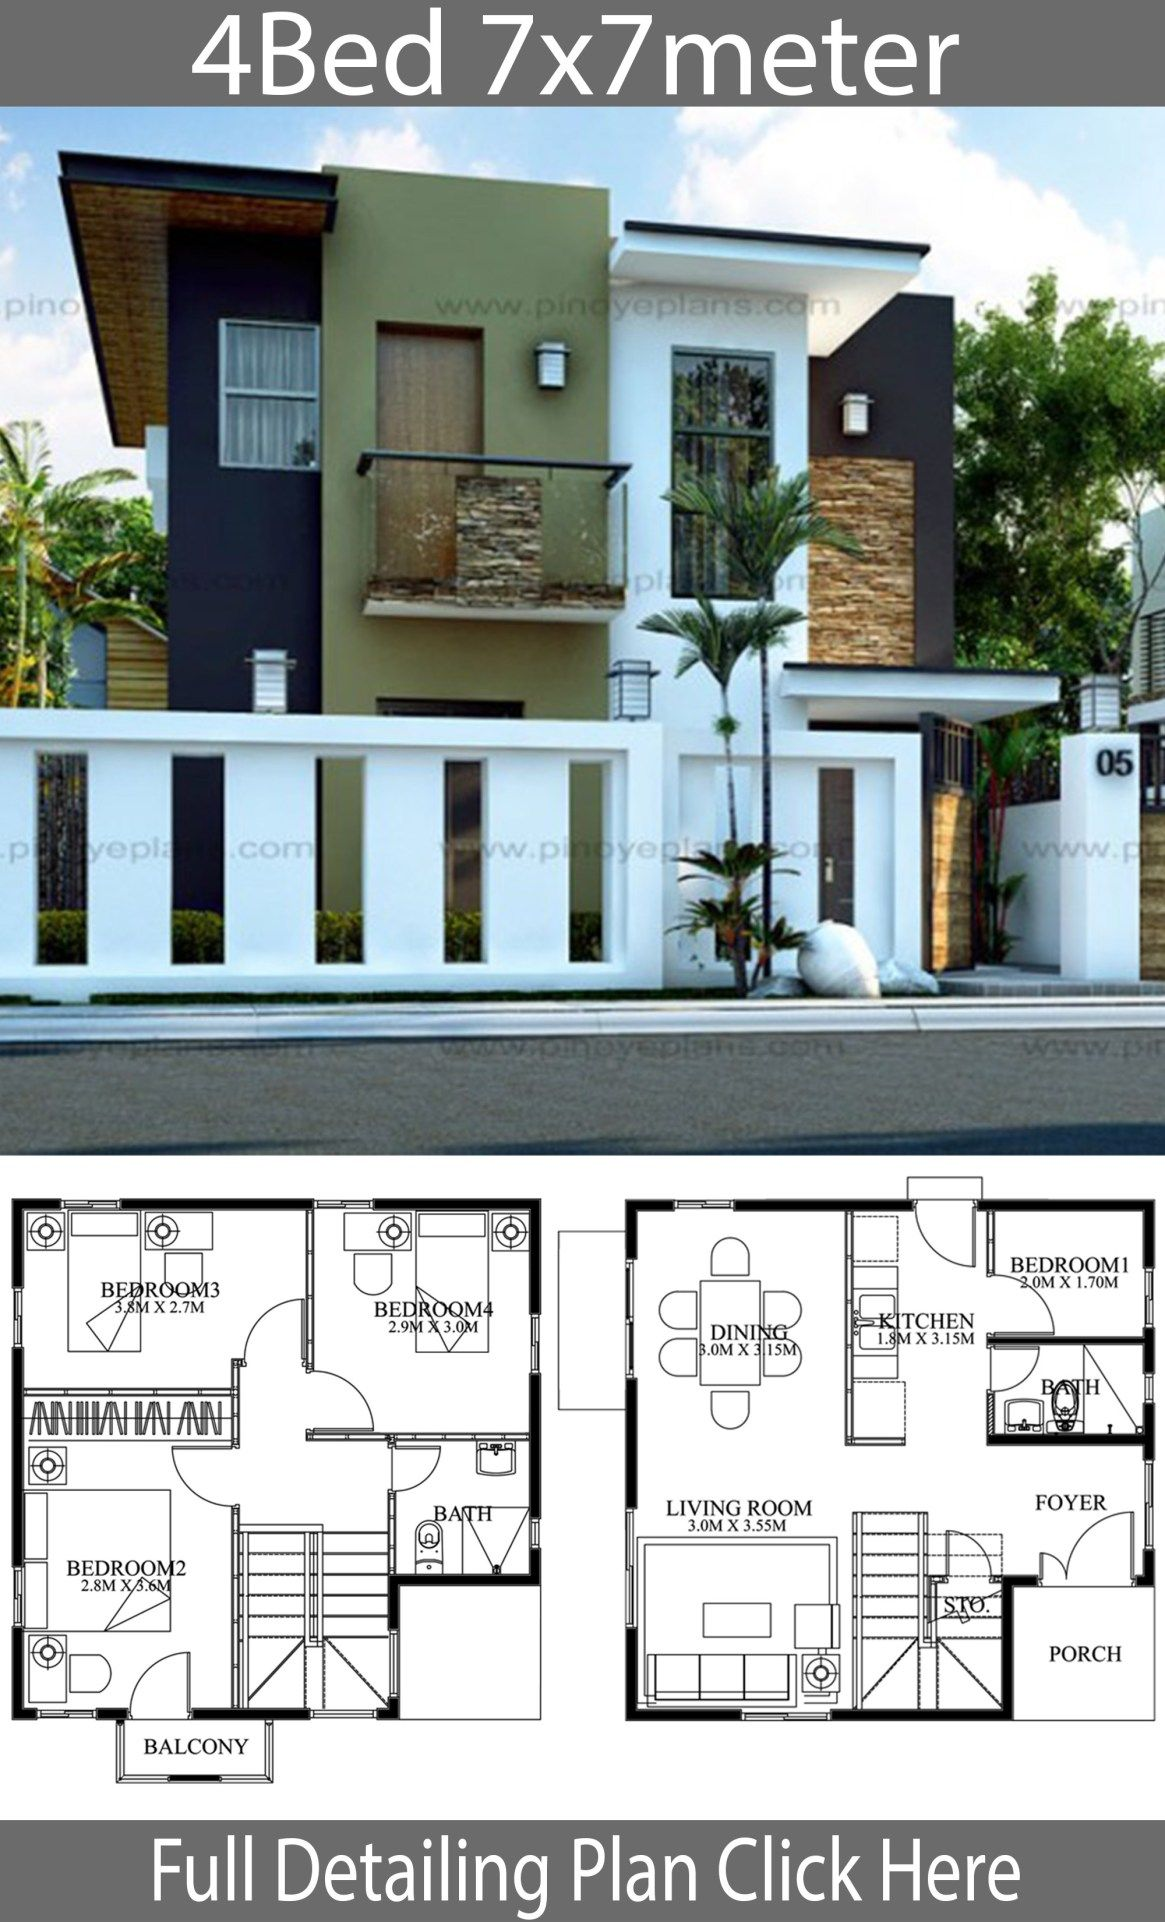 Modern Home Design 7x7m With 4 Bedrooms Home Design With Plansearch Bungalow House Design House Architecture Design House Designs Exterior